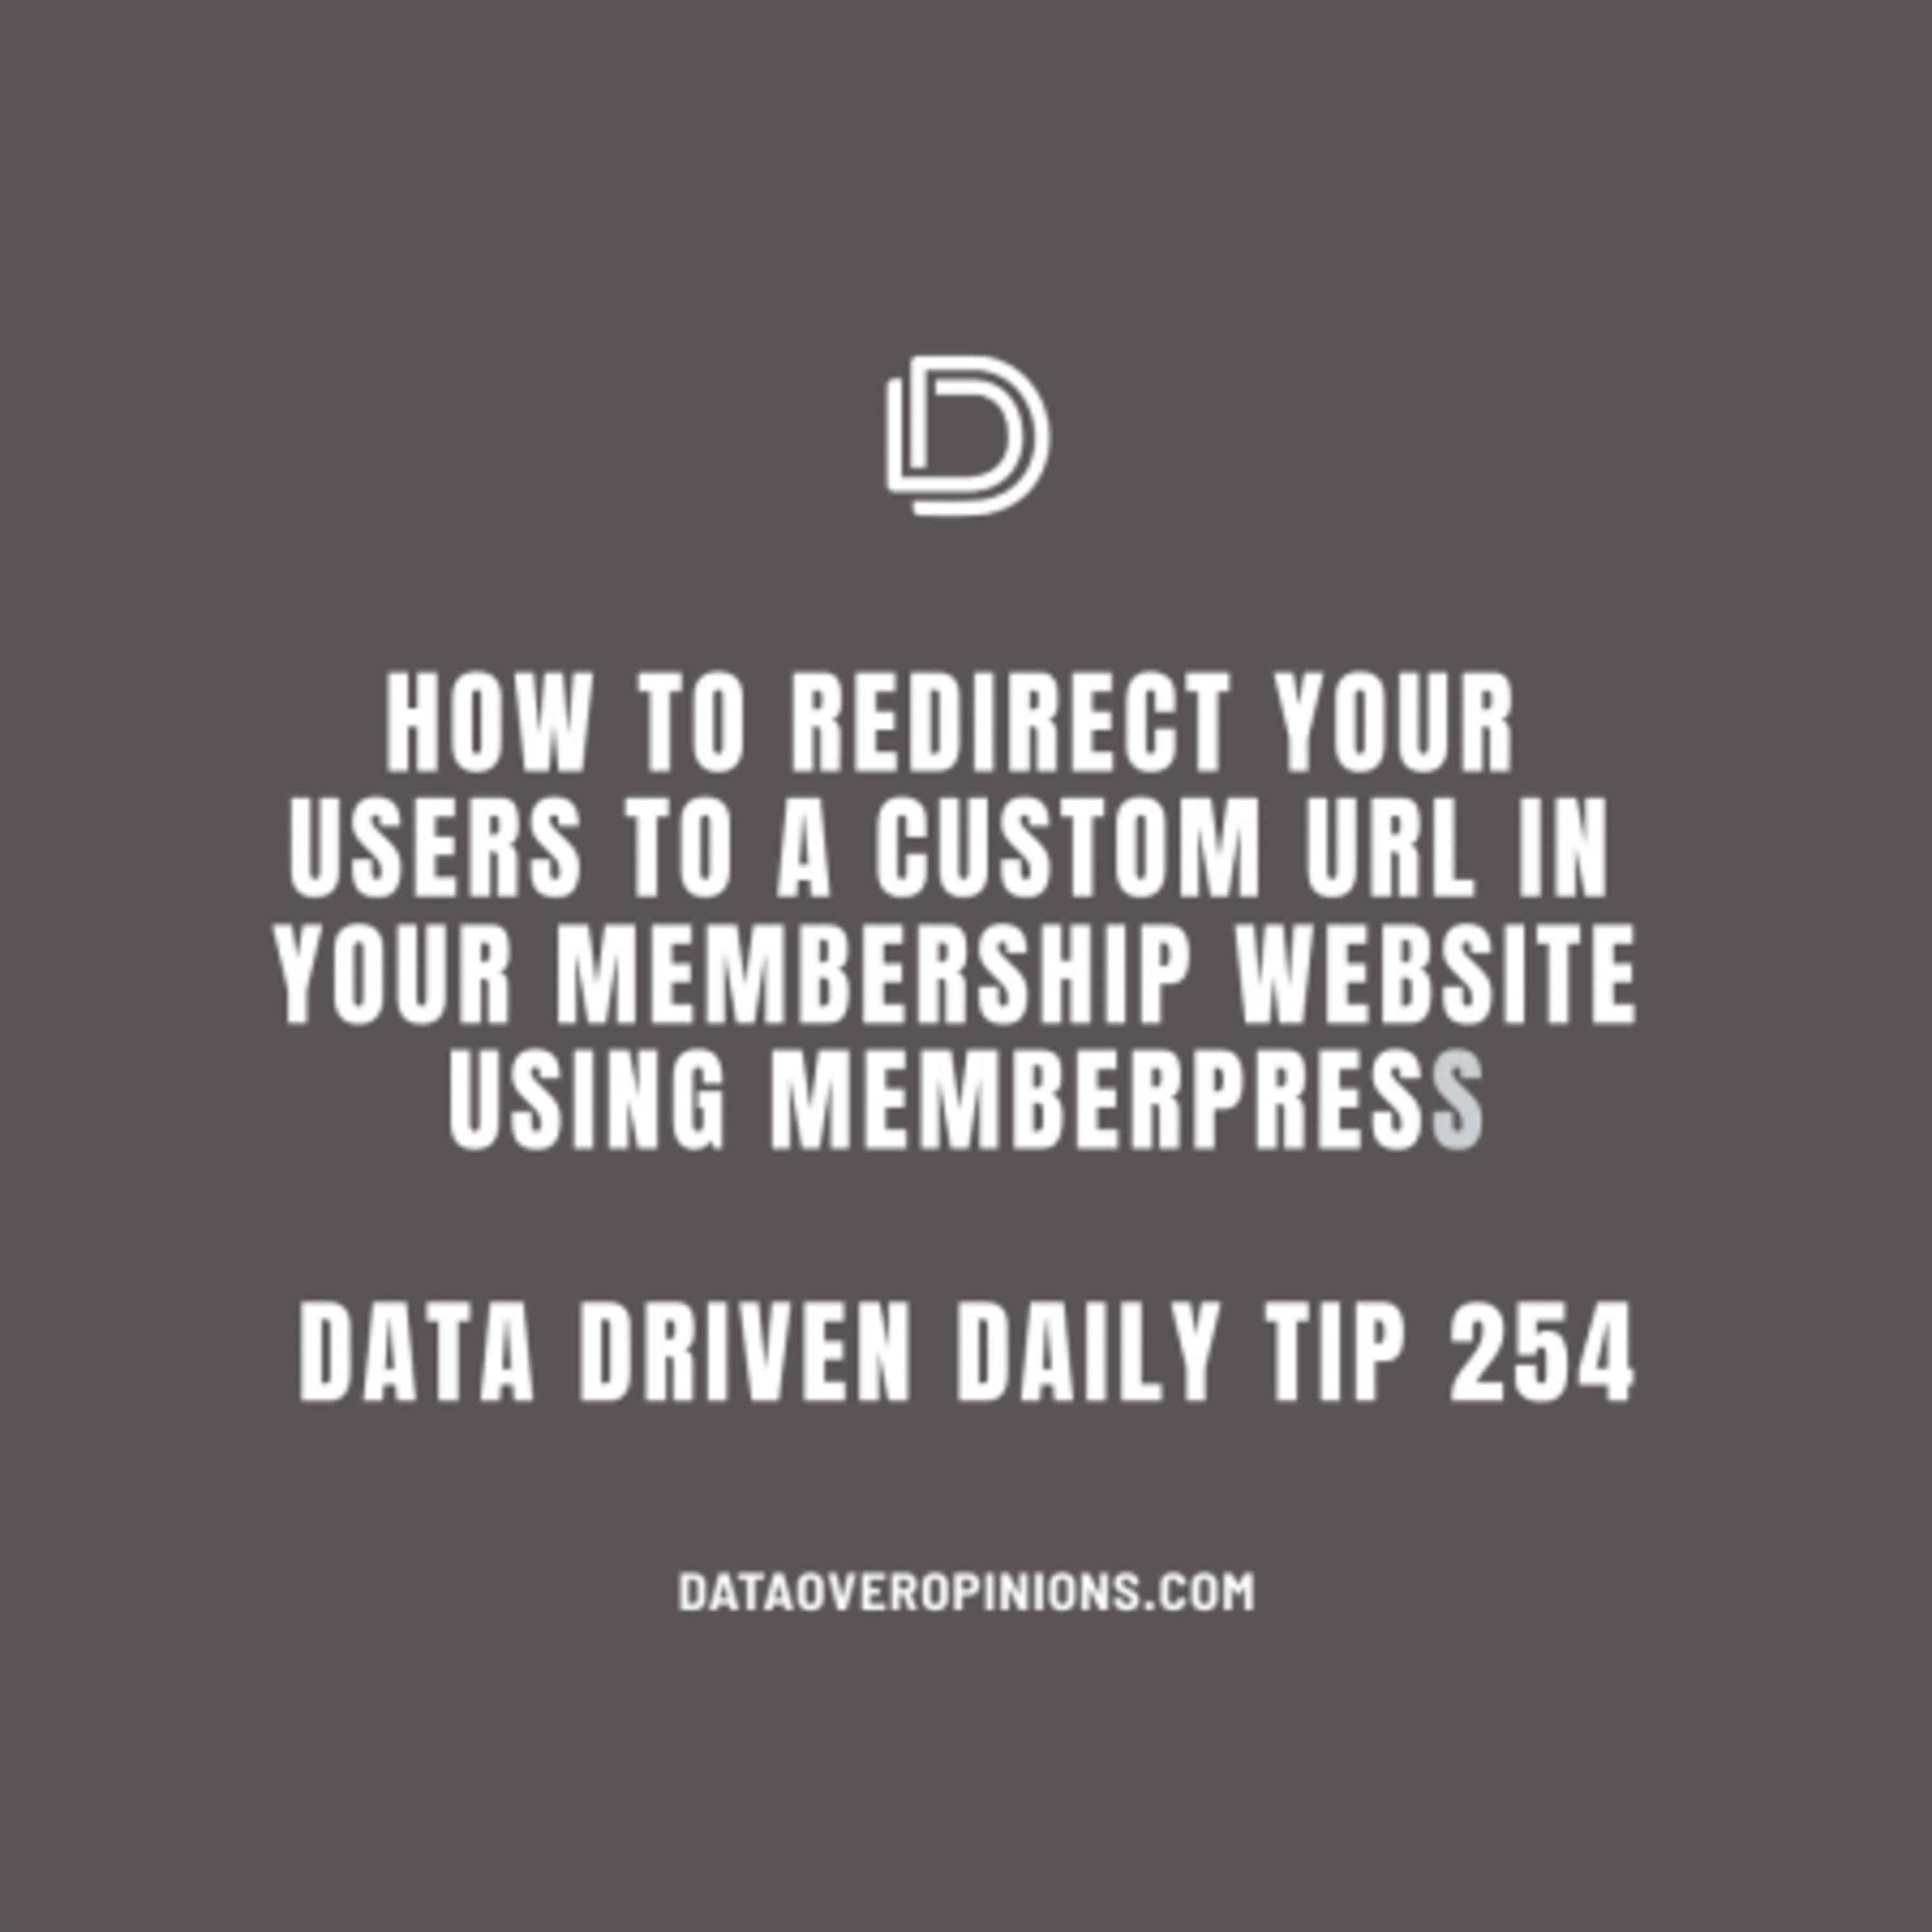 Ep.132: How To Redirect Your Users To A Custom URL In Your Membership Website Using Memberpress - Data Driven Daily Tip 254